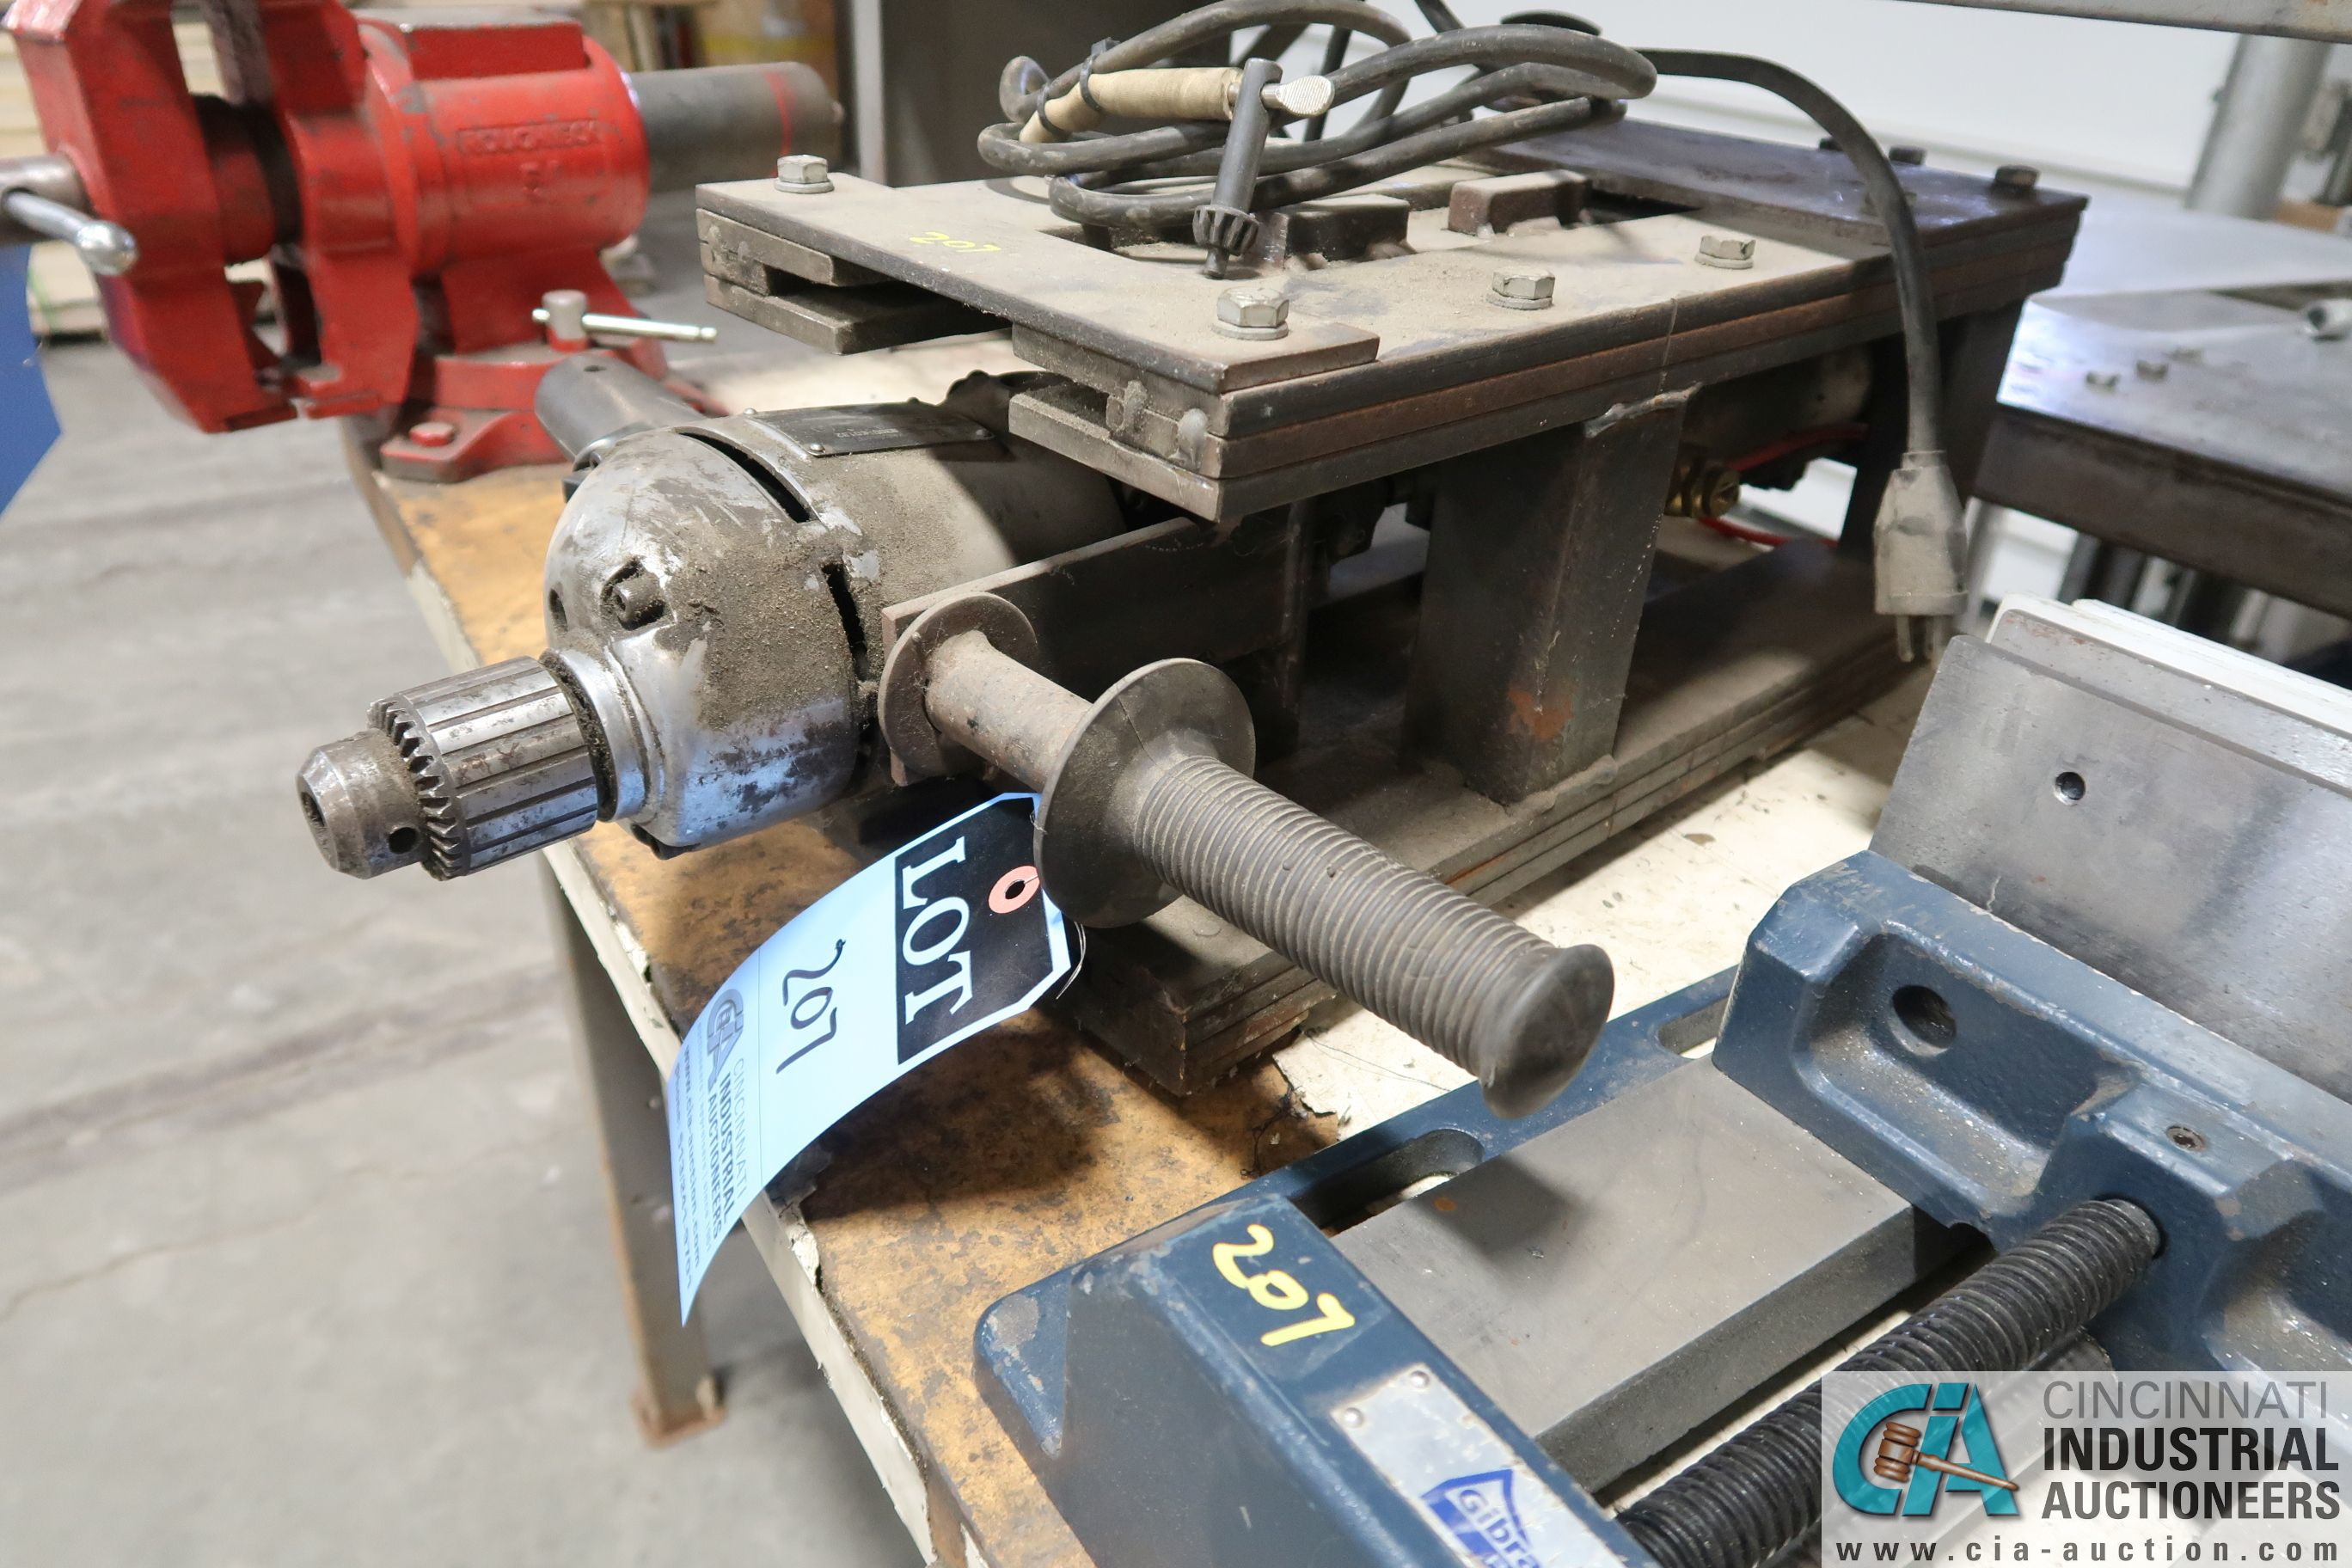 """(LOT) 1/2"""" SPECIALITY DRILL AND 8"""" GIBRATOR DRILL VISE - Image 2 of 3"""